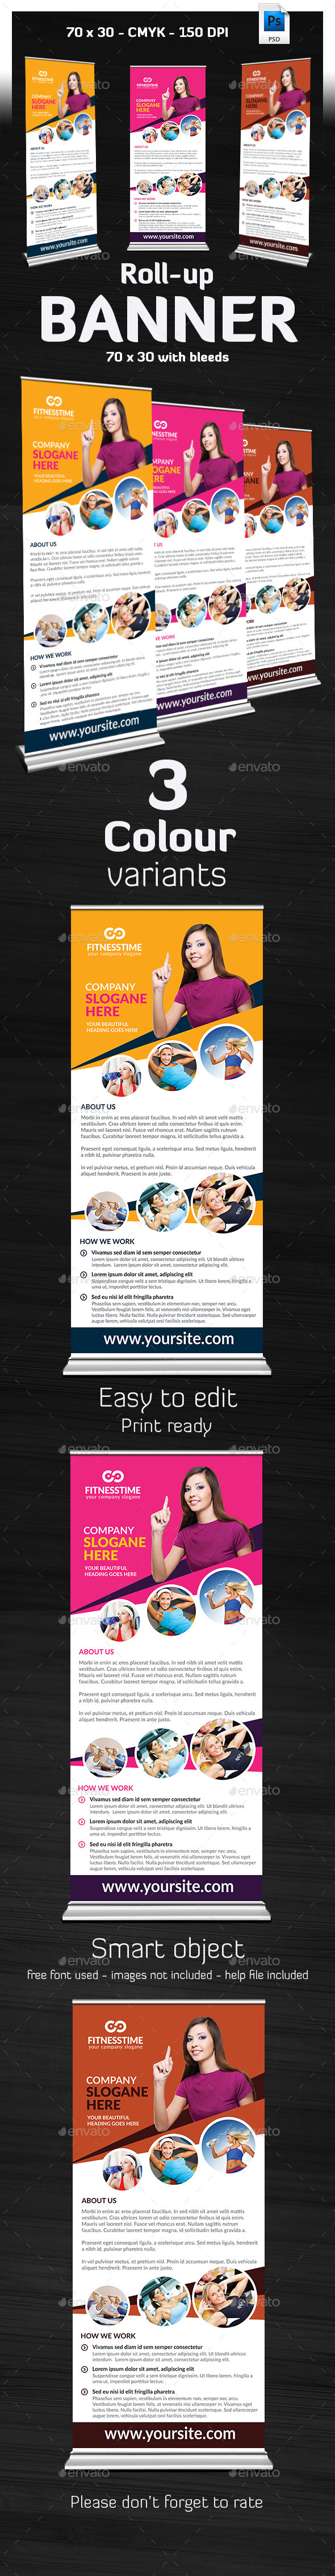 GraphicRiver Ivato Multipurpose Roll Up Banner 9373504